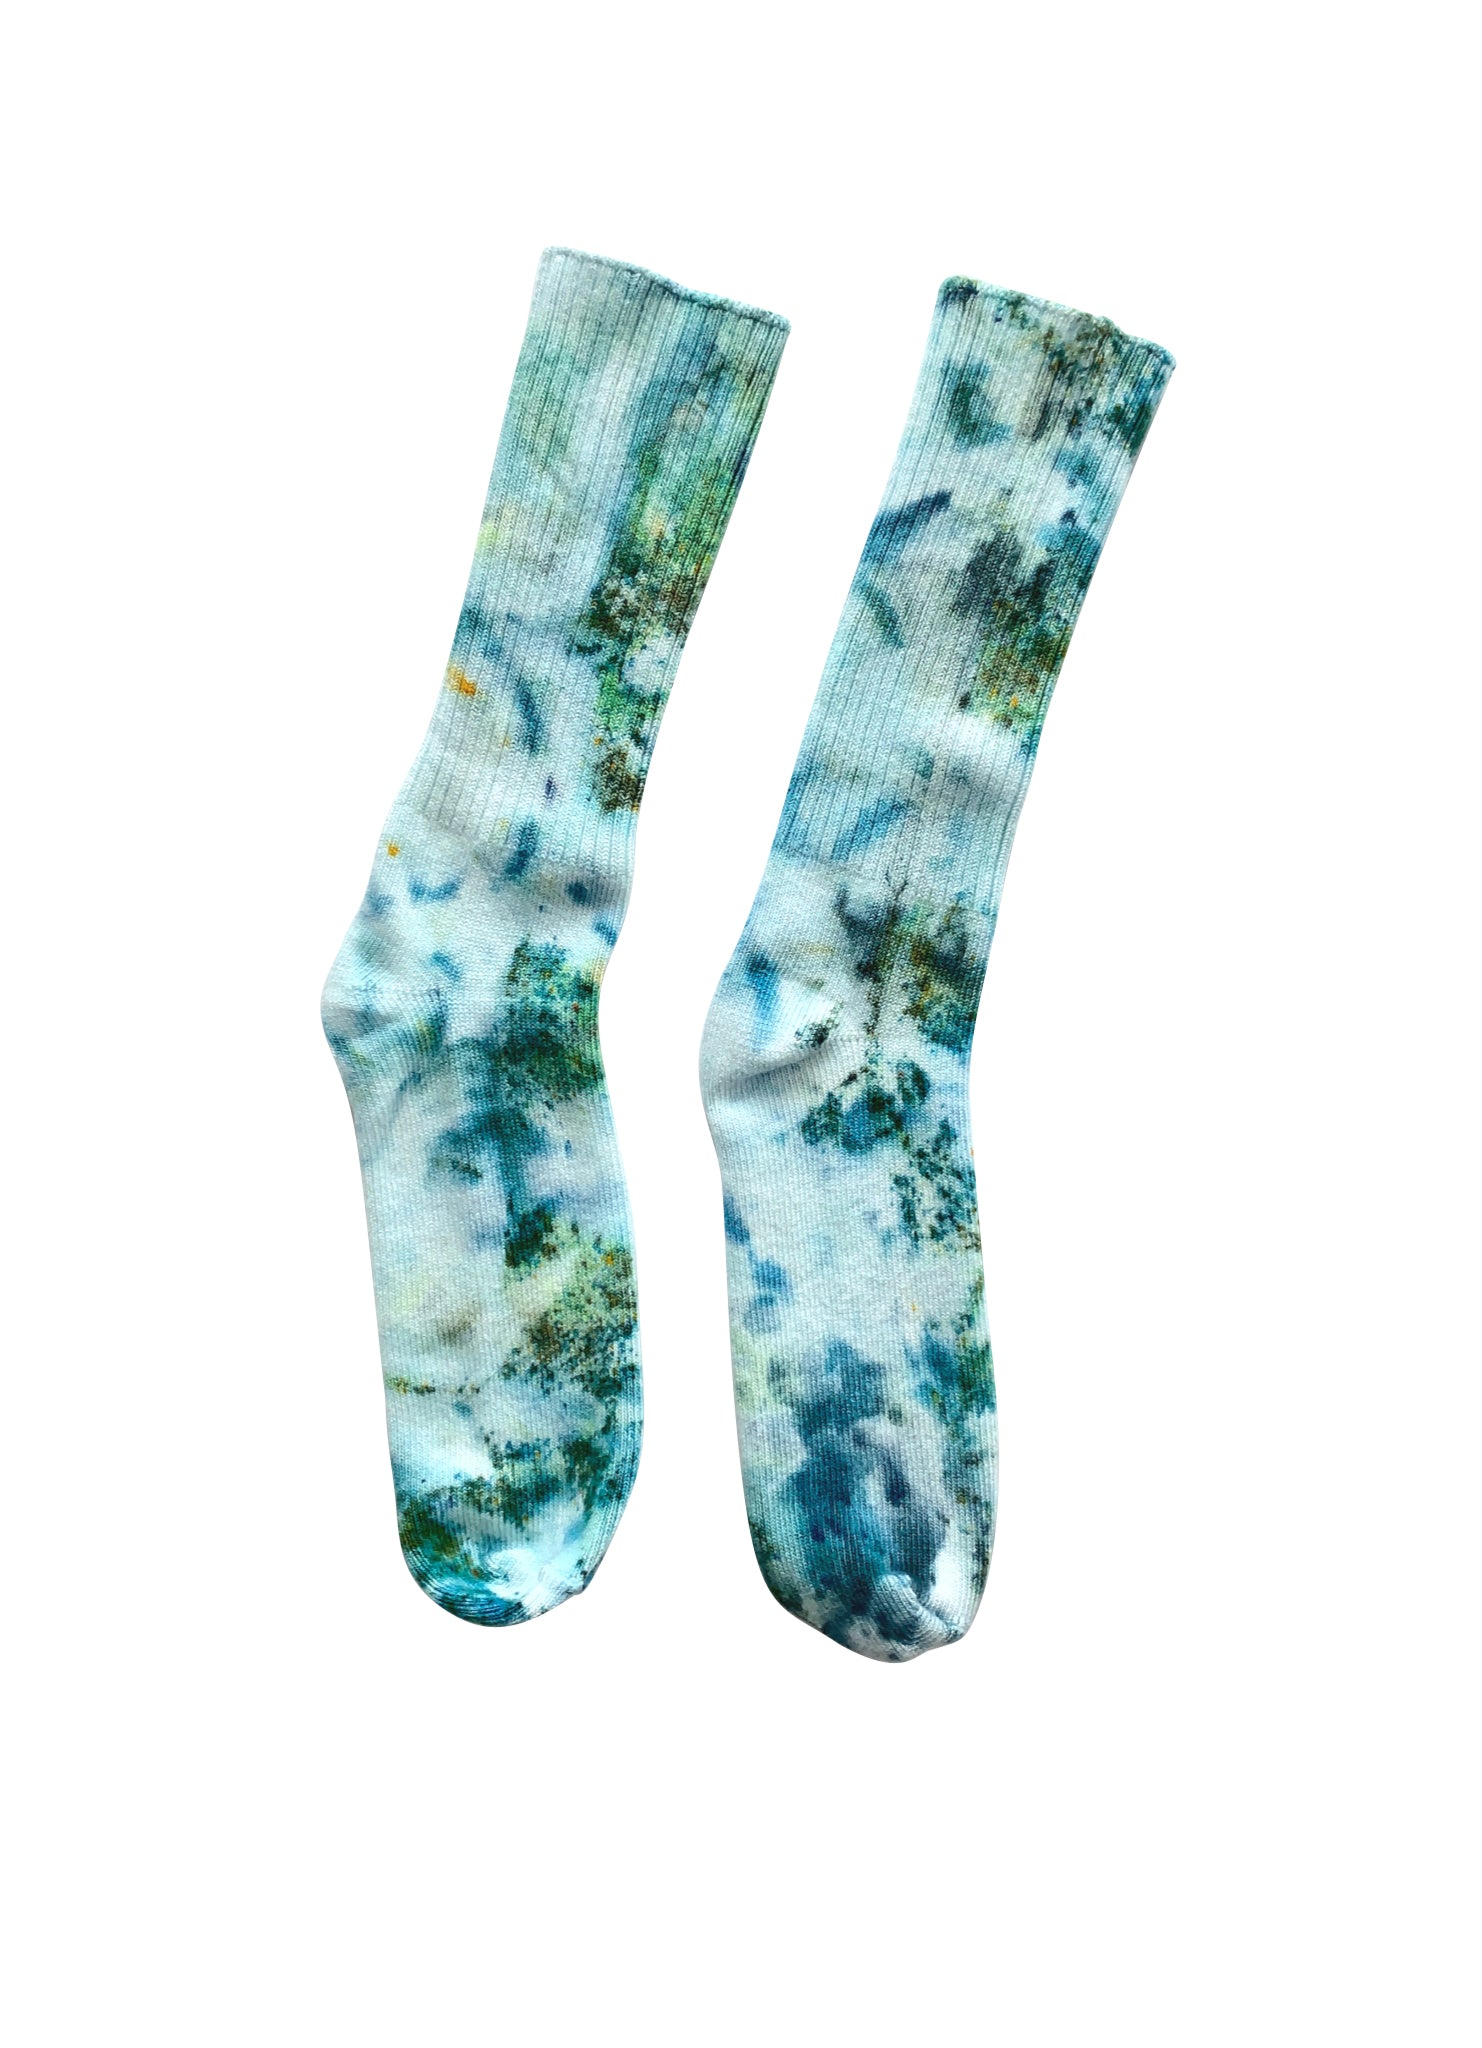 Bamboo Rayon Crew Socks- Sea Glass - Crew Socks - Dyetology